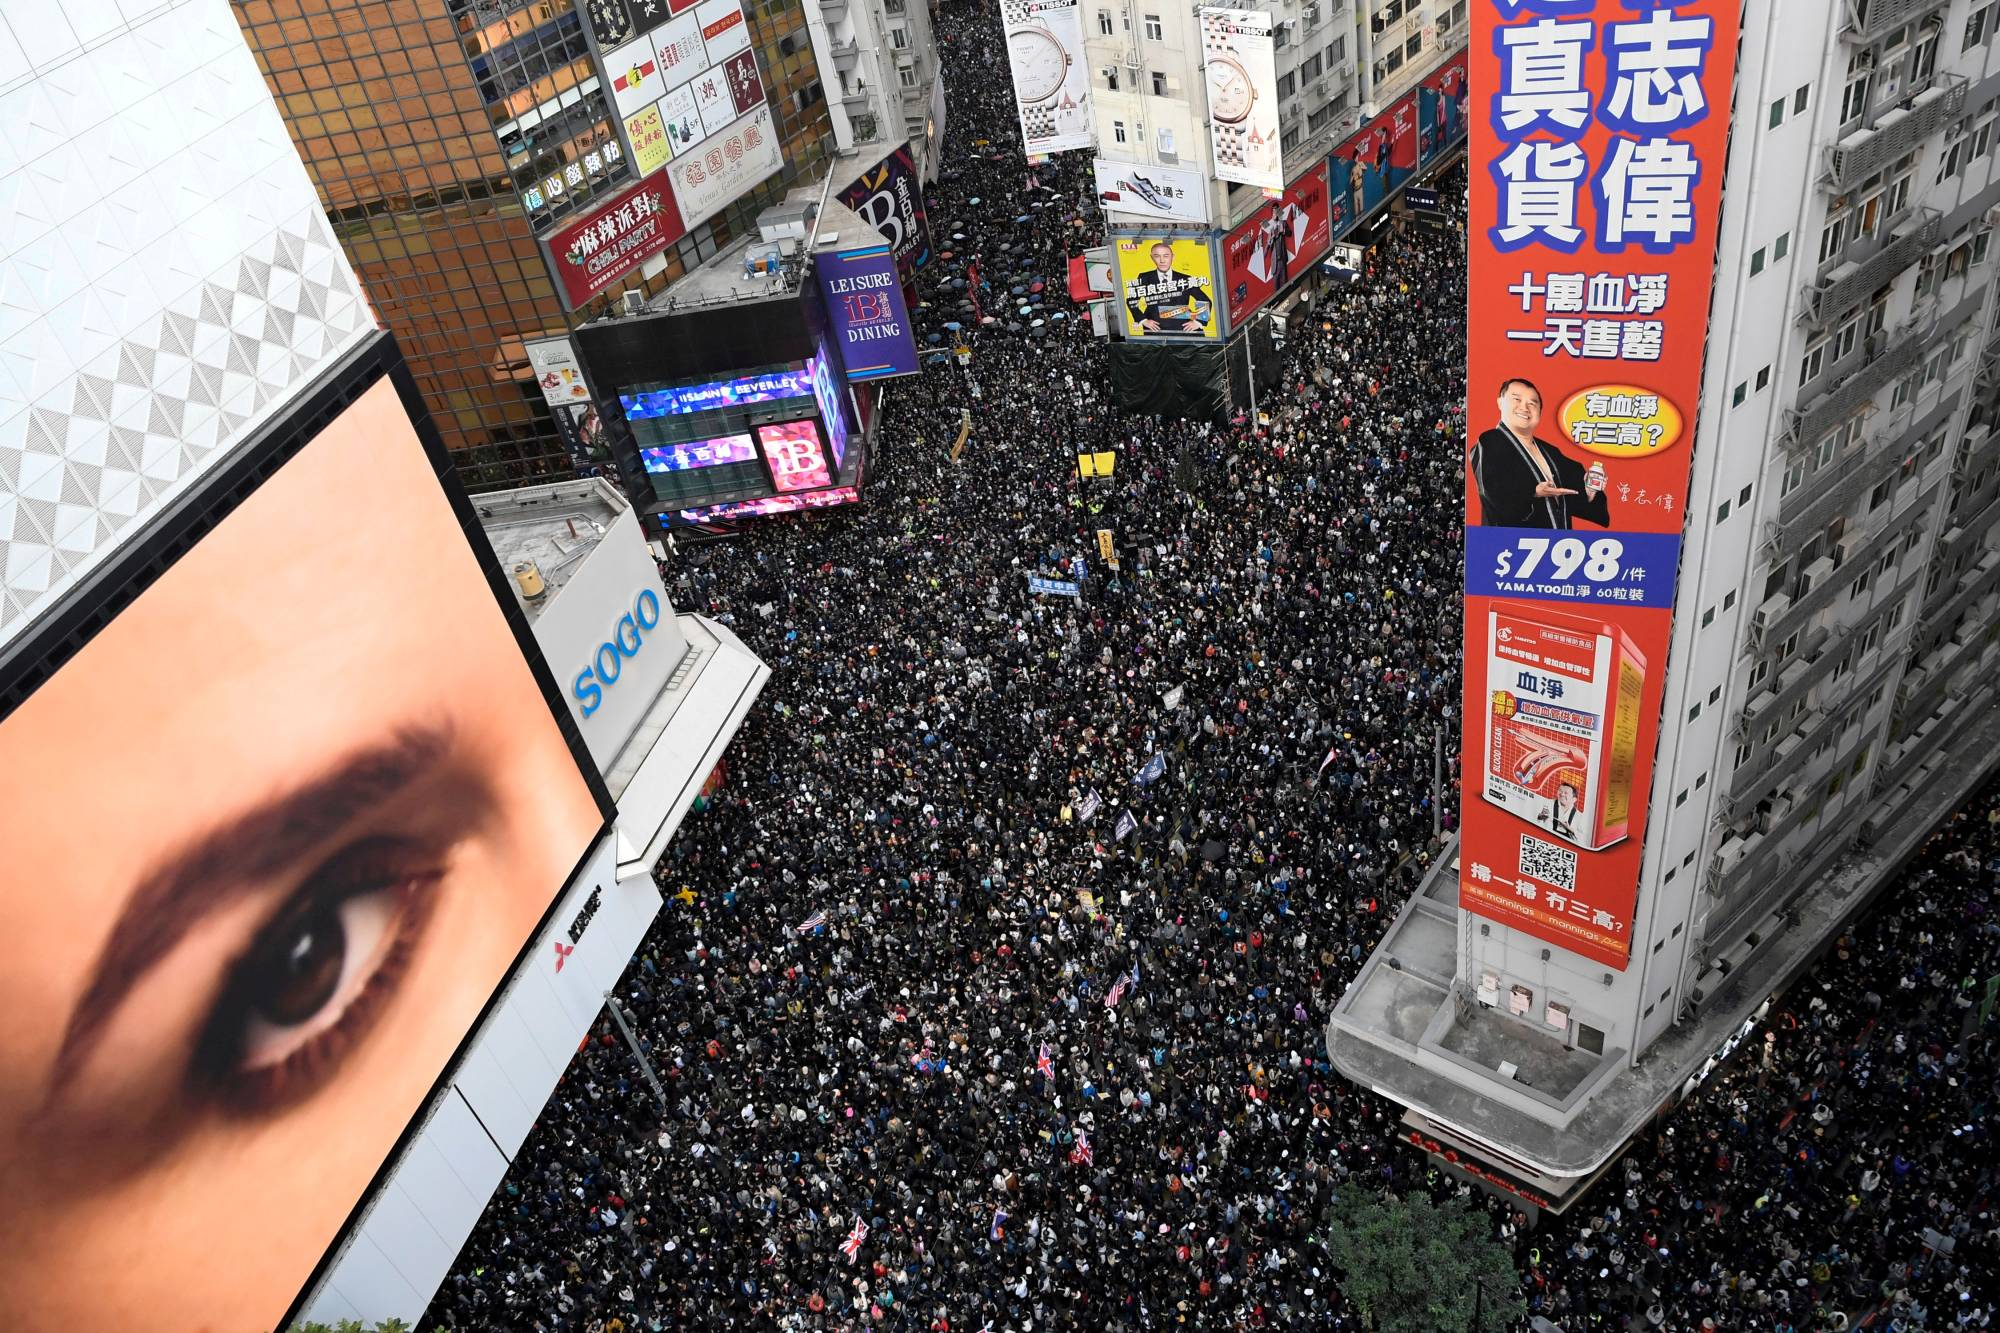 Protesters gather in the district of Causeway Bay in Hong Kong on Dec. 8, 2019.   REUTERS